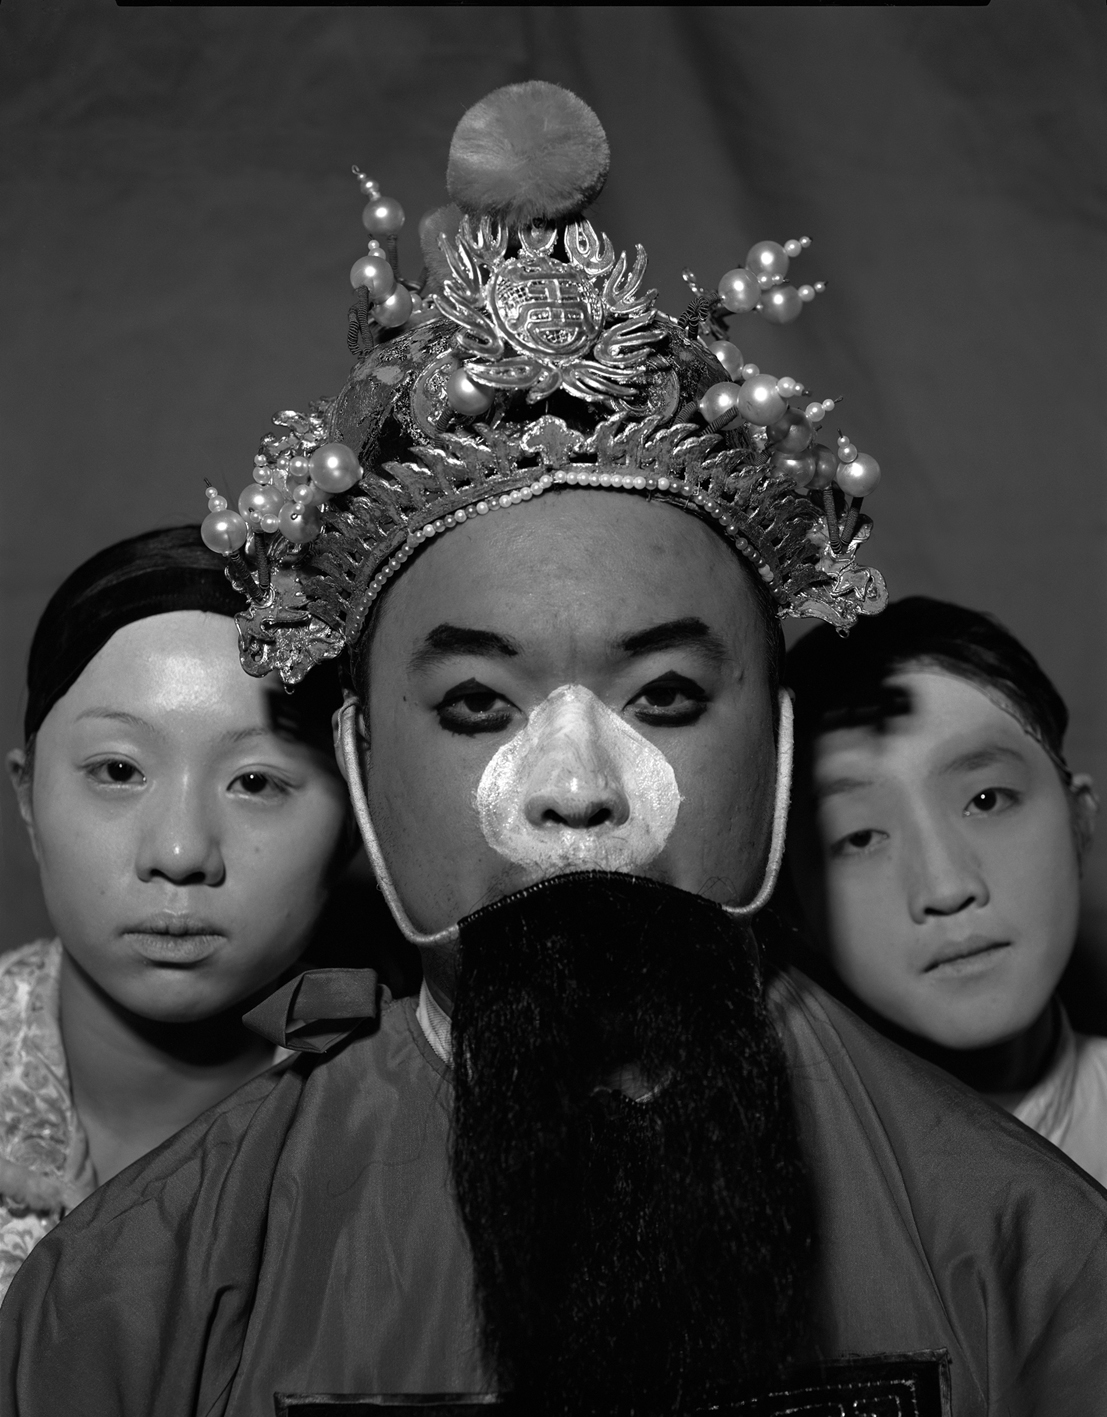 A Chinese opera clown professor with his pupils, 2005, 150x120cm